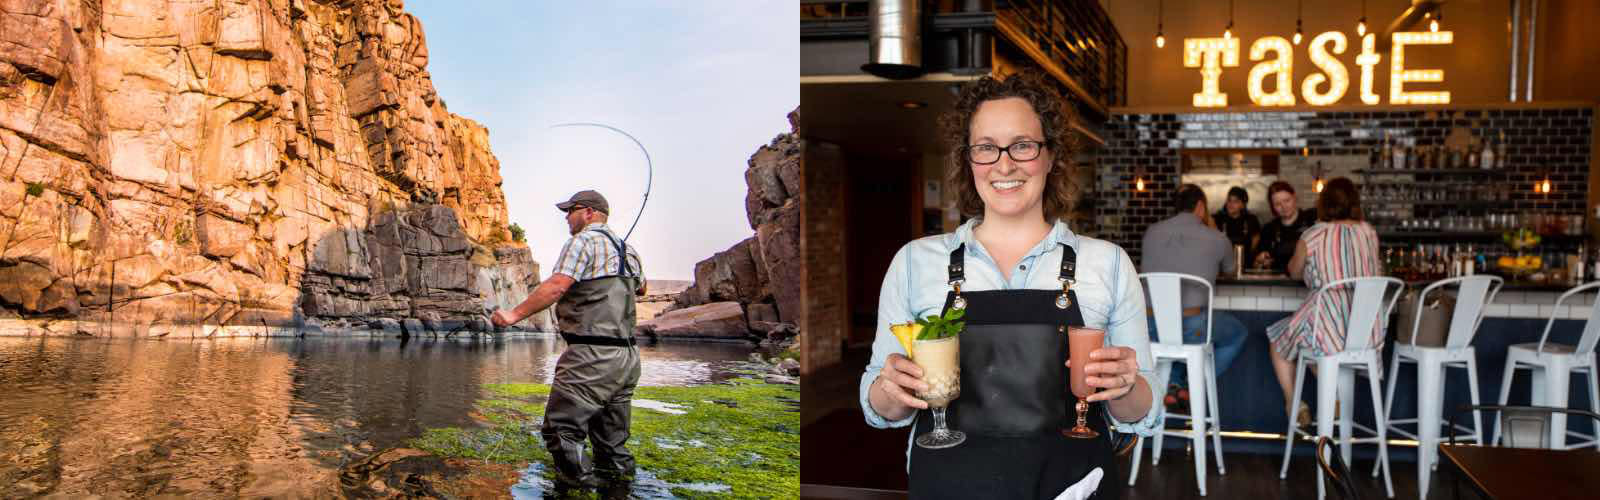 A man wearing full waders is fly fishing in Fremont Canyon surrounded by high rock cliffs on a trip to Casper, Wyoming and A female server wearing a leather apron and a big smile  is standing with two cocktails in her hands.